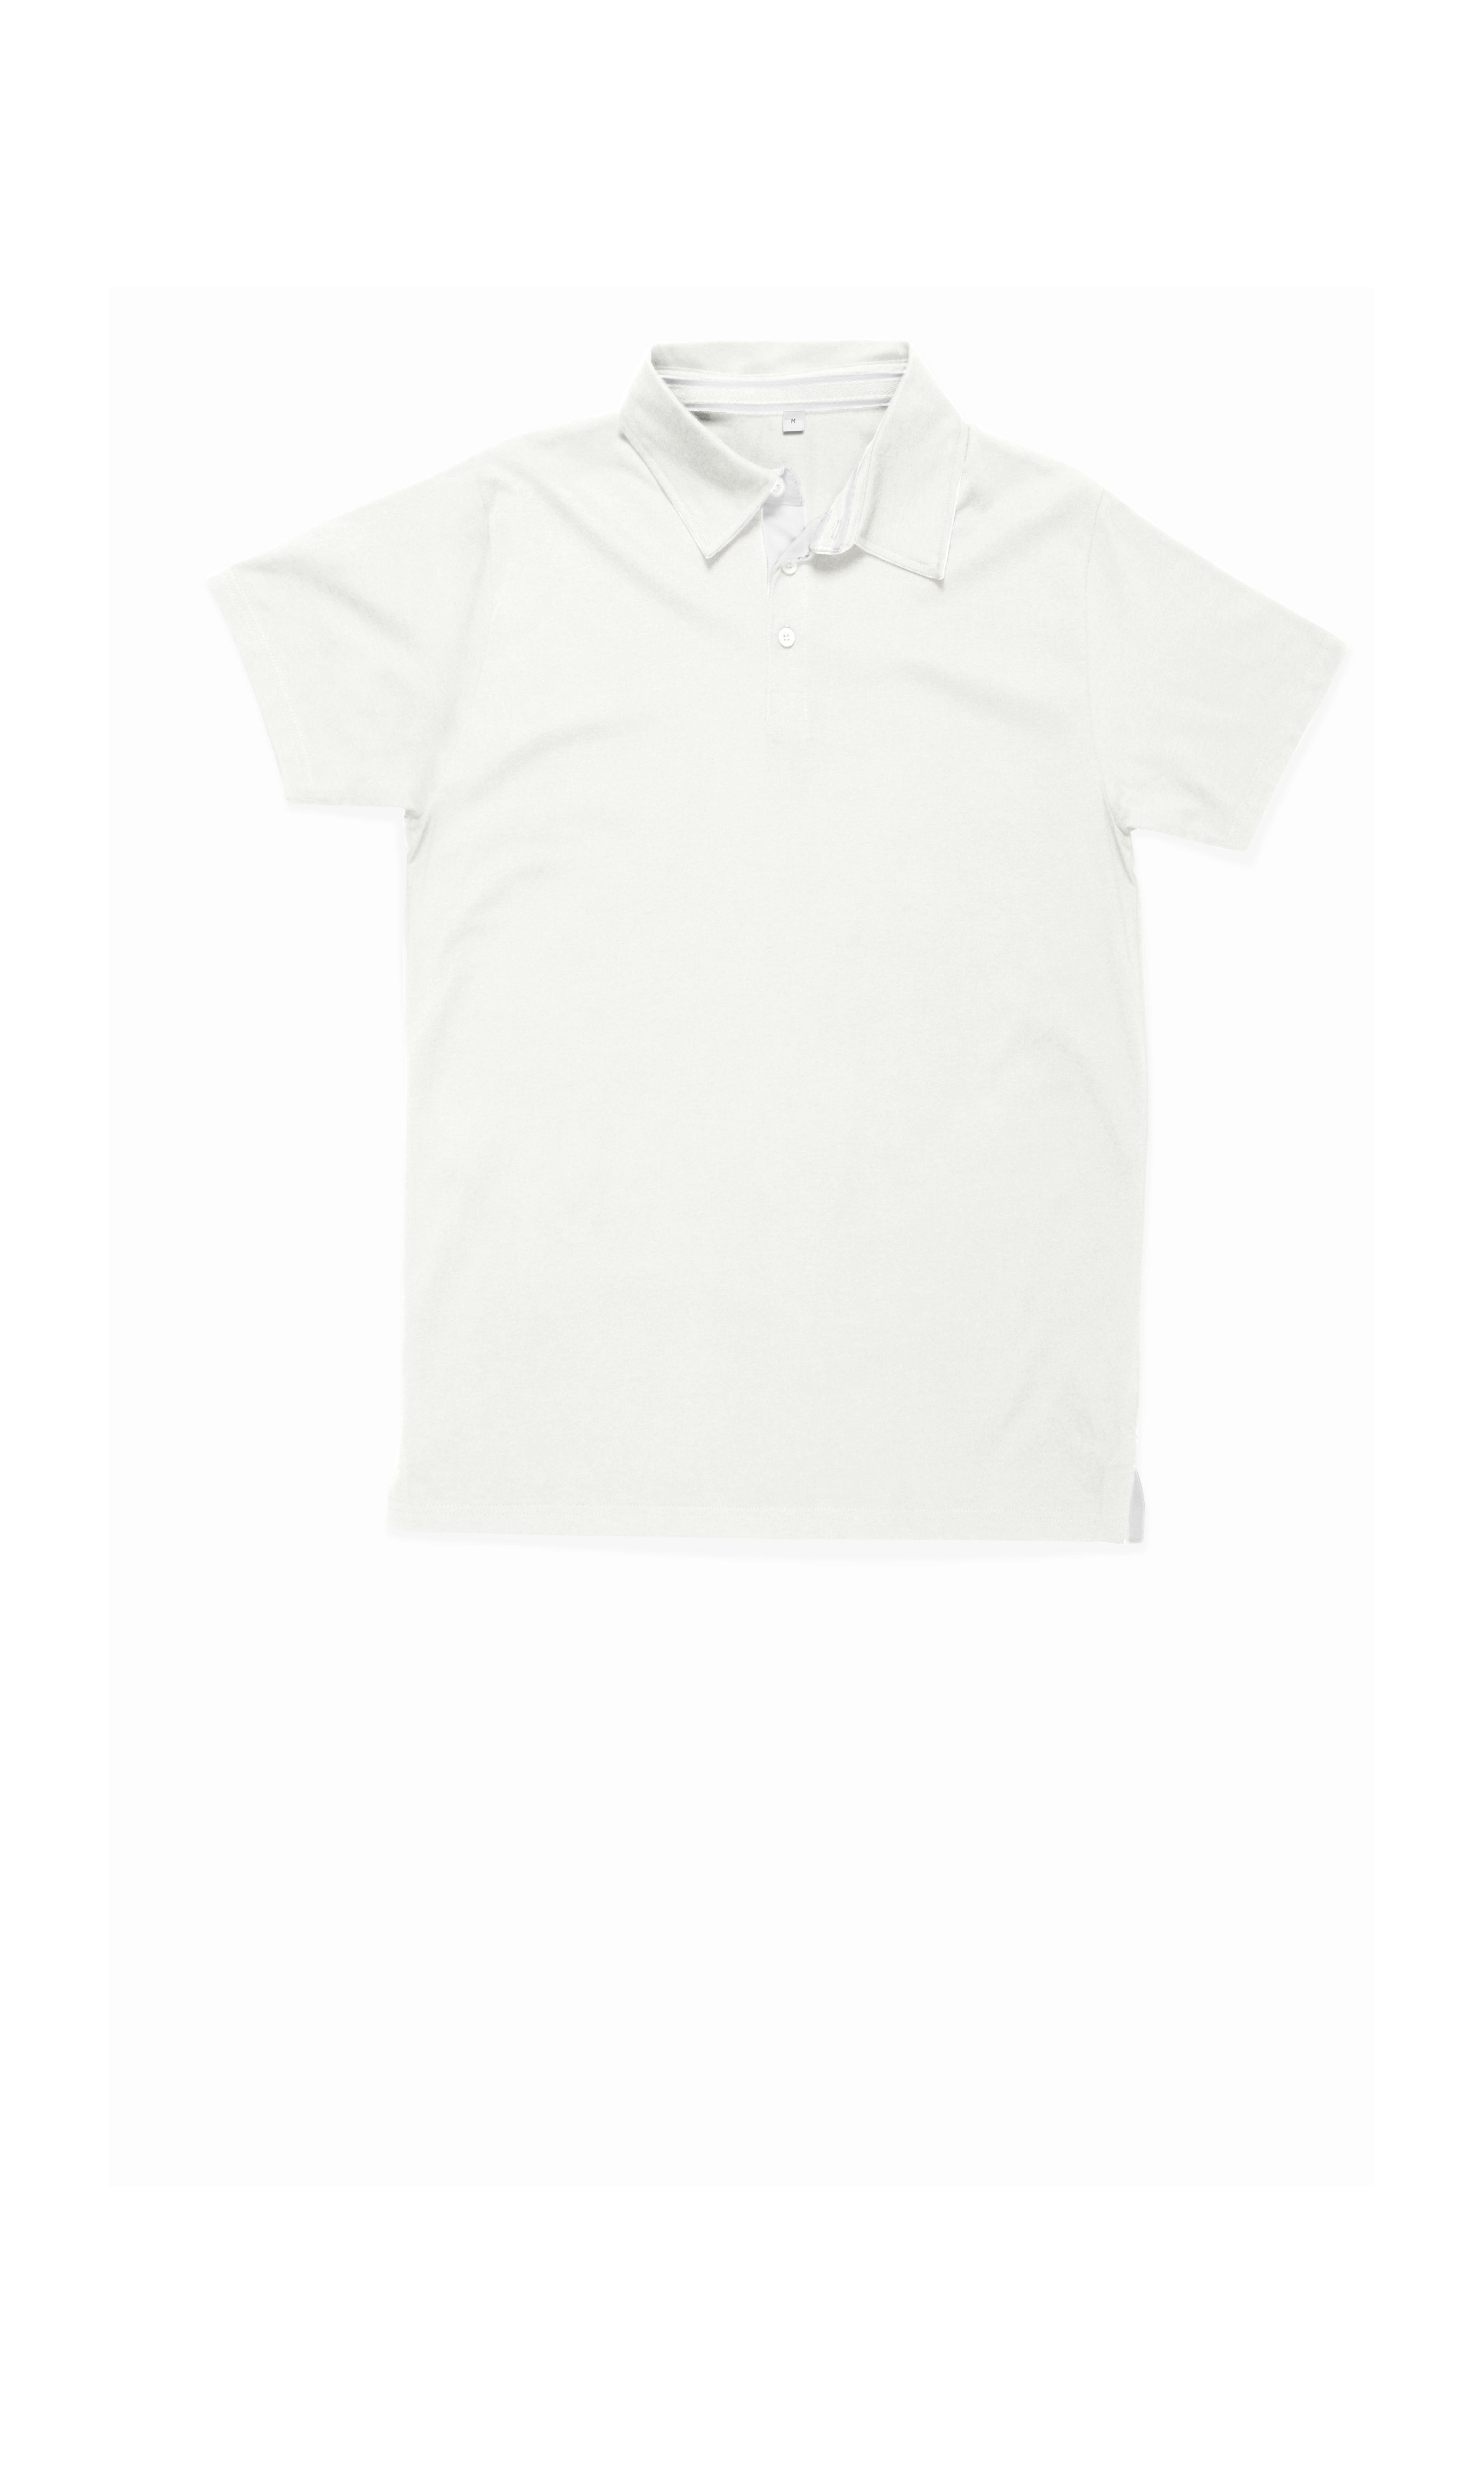 Mens Supersoft Rugby Top - Washed White - XL